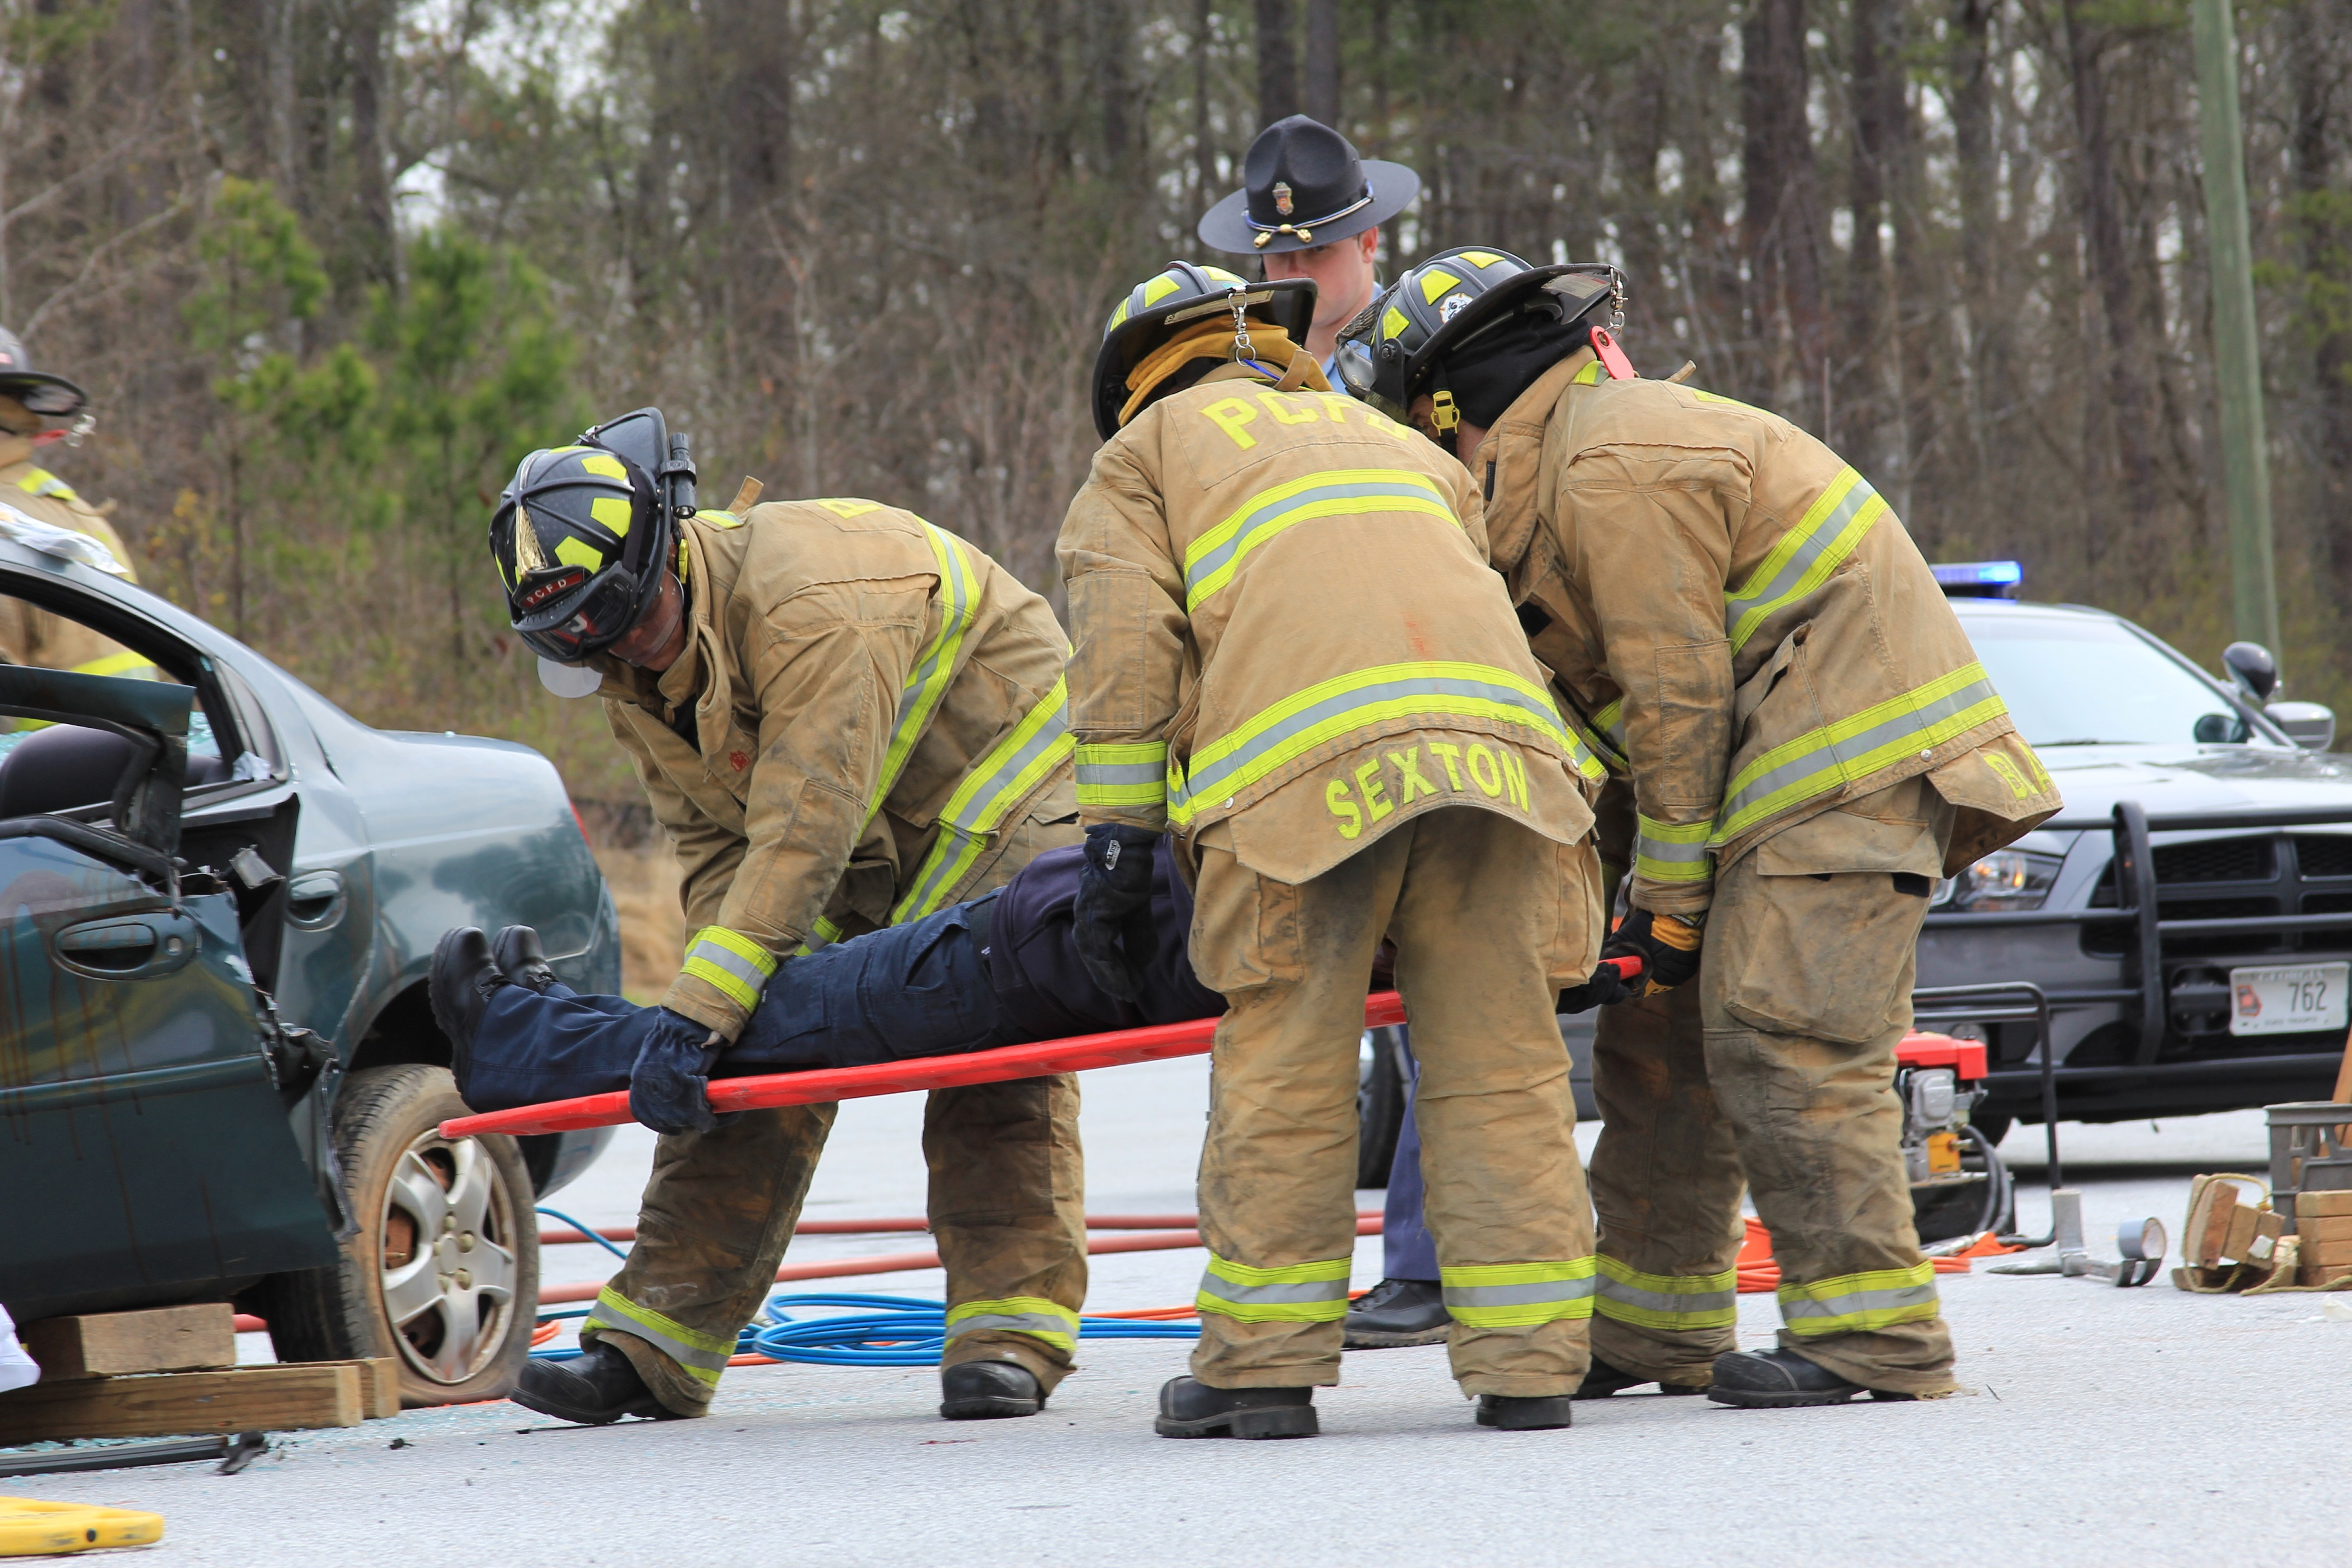 Extrication Photo.jpg